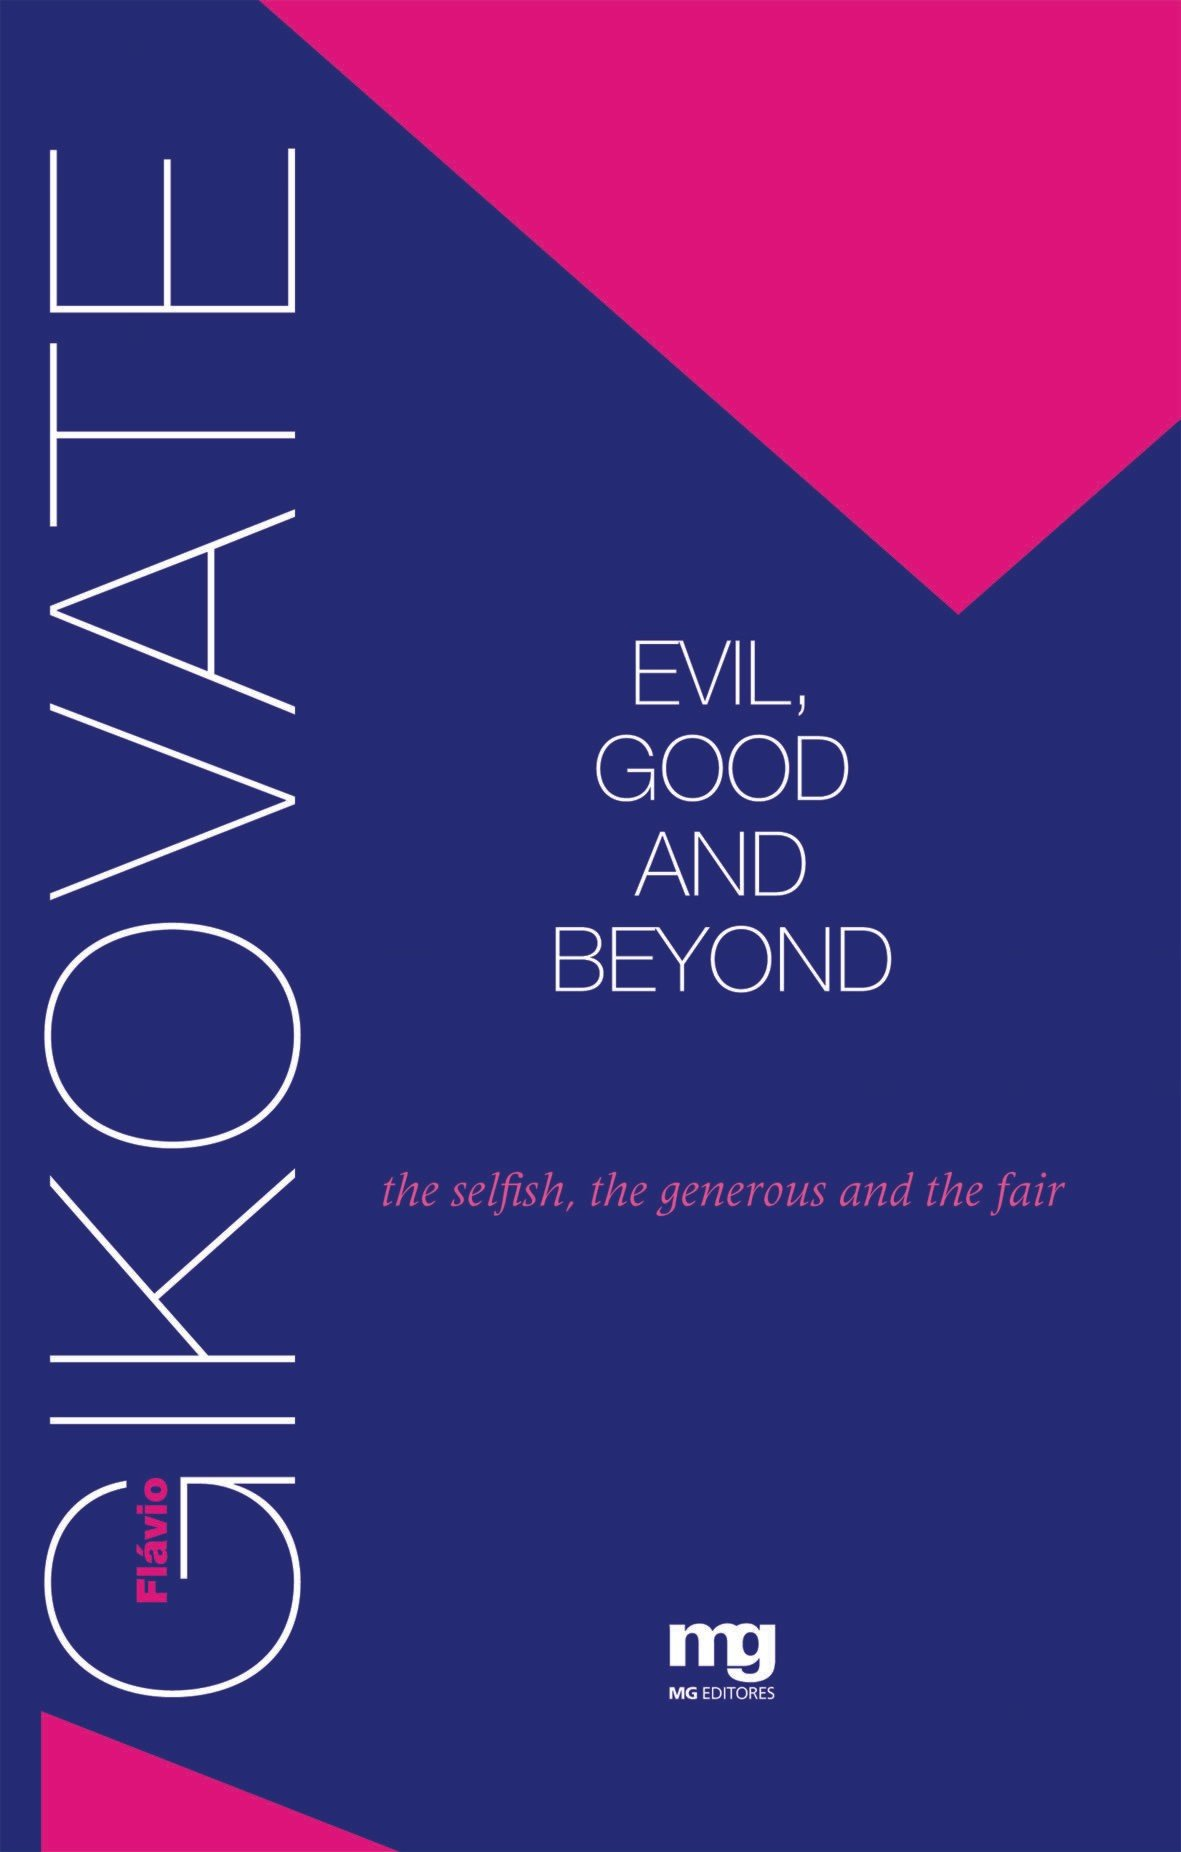 Evil, Good AND Beyond: THE Selfish, THE Generous AND THE Fair